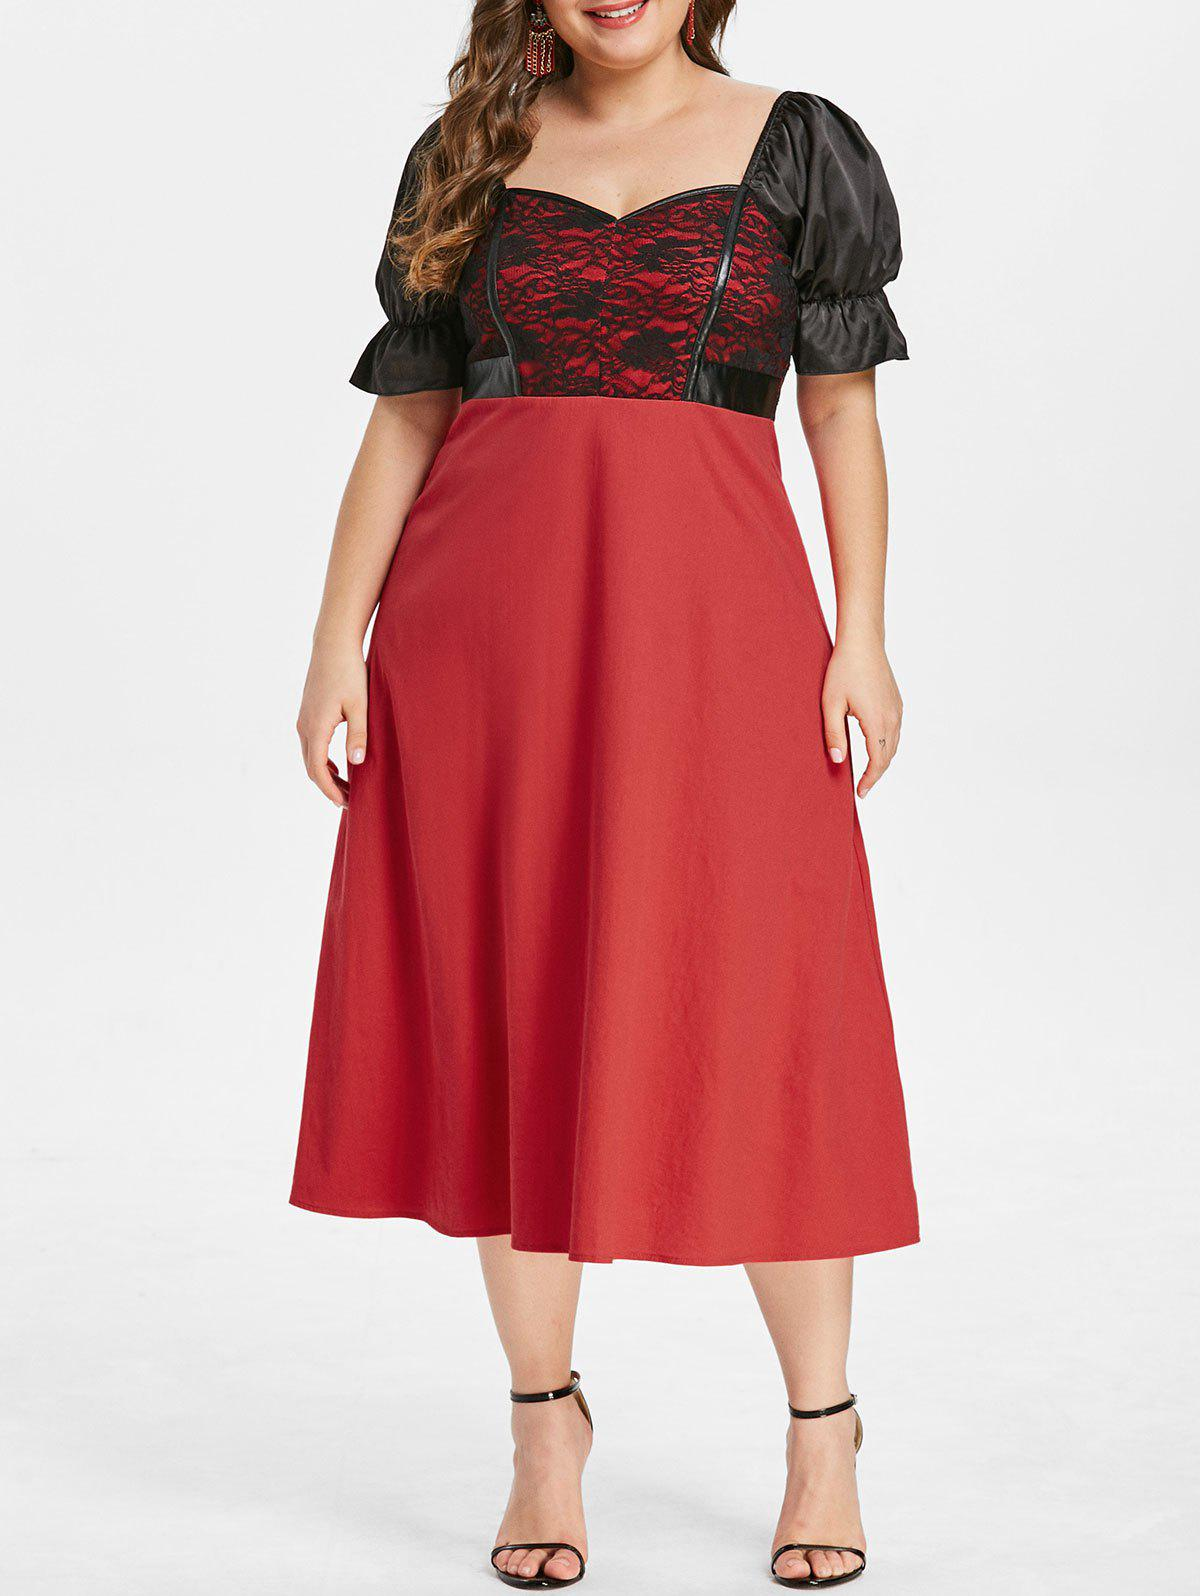 Plus Size Lace Panel Sweetheart Dress - RED L